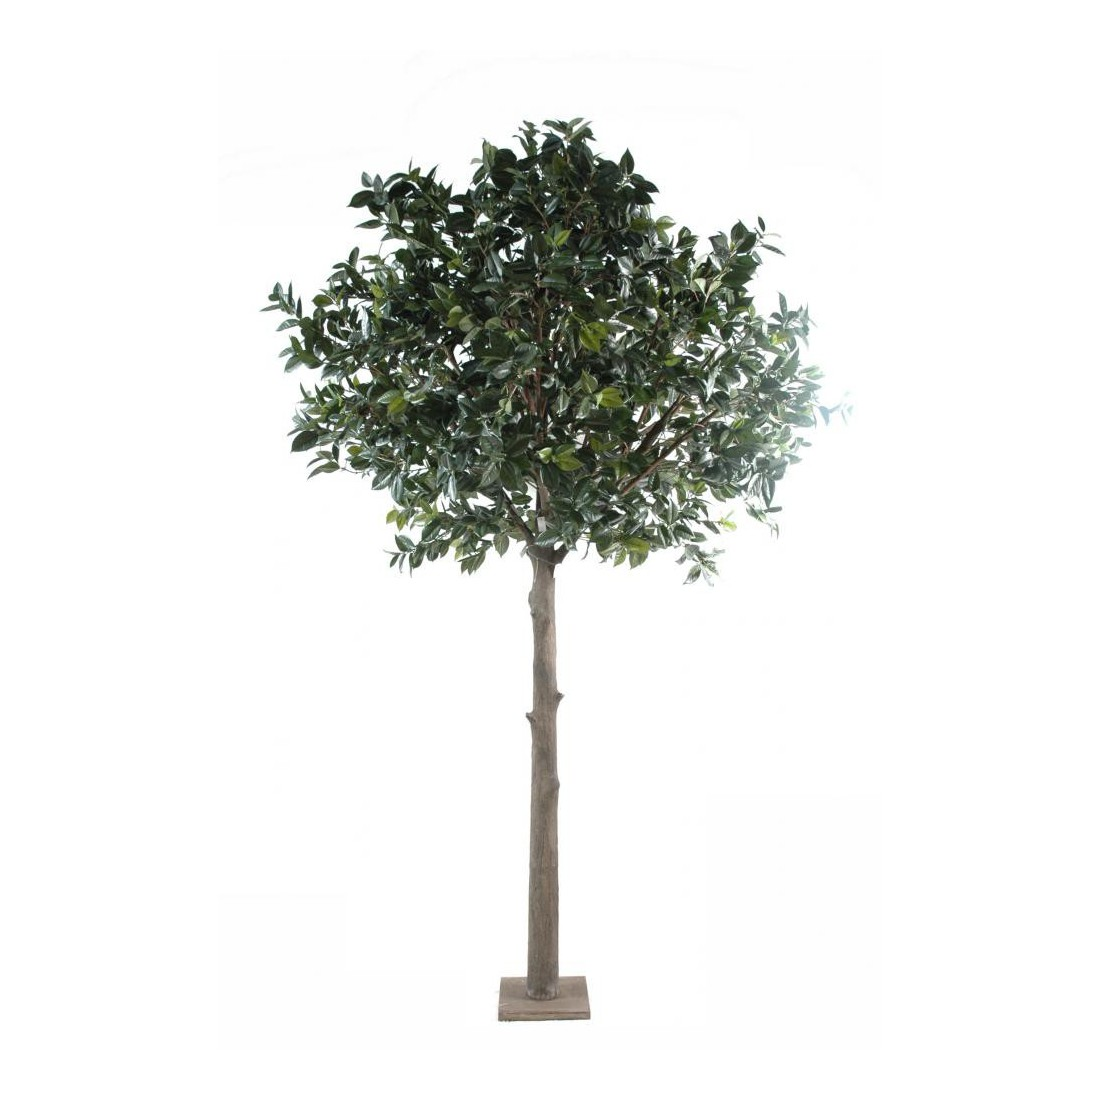 Arbre fruitier artificiel camelia japonica tree 300cm for Arbre artificiel exterieur